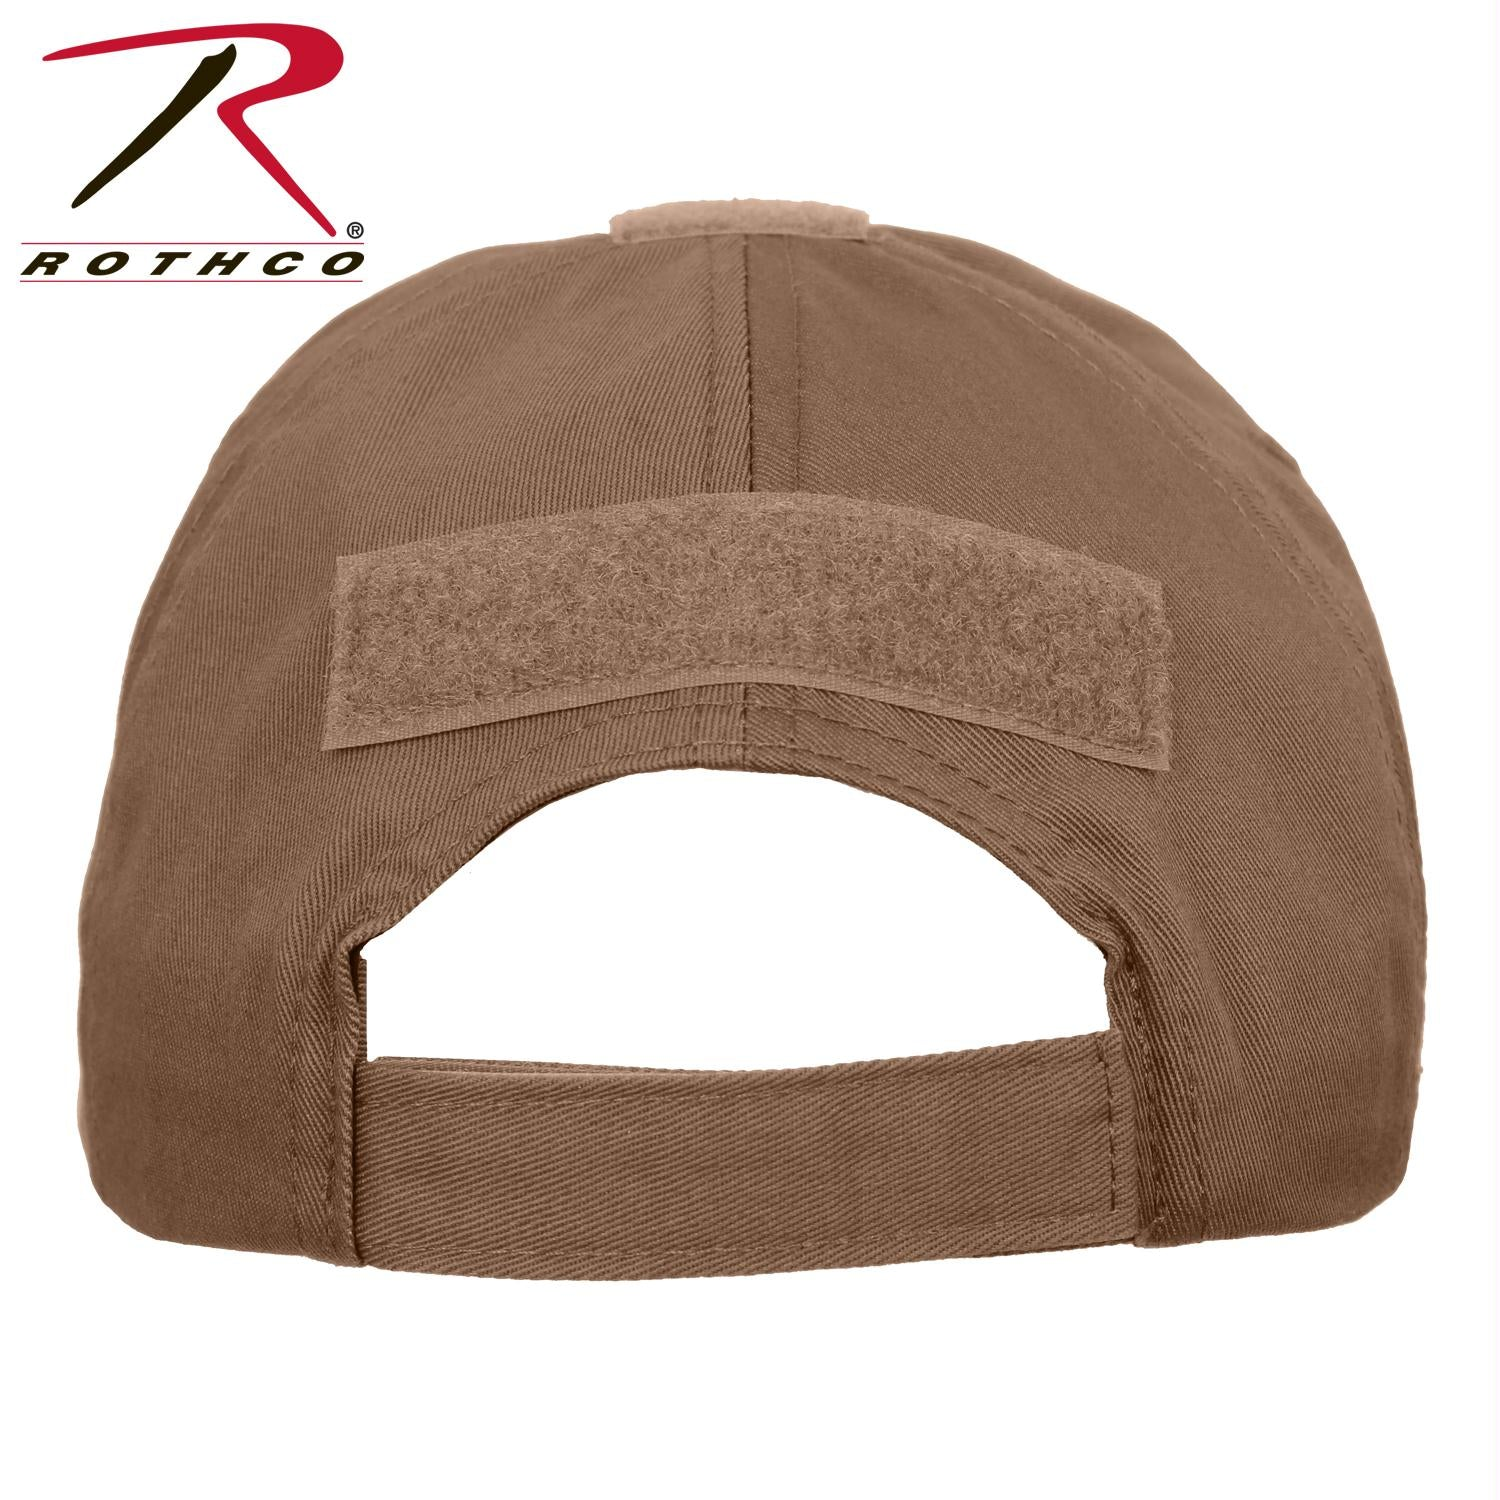 Rothco Tactical Operator Cap